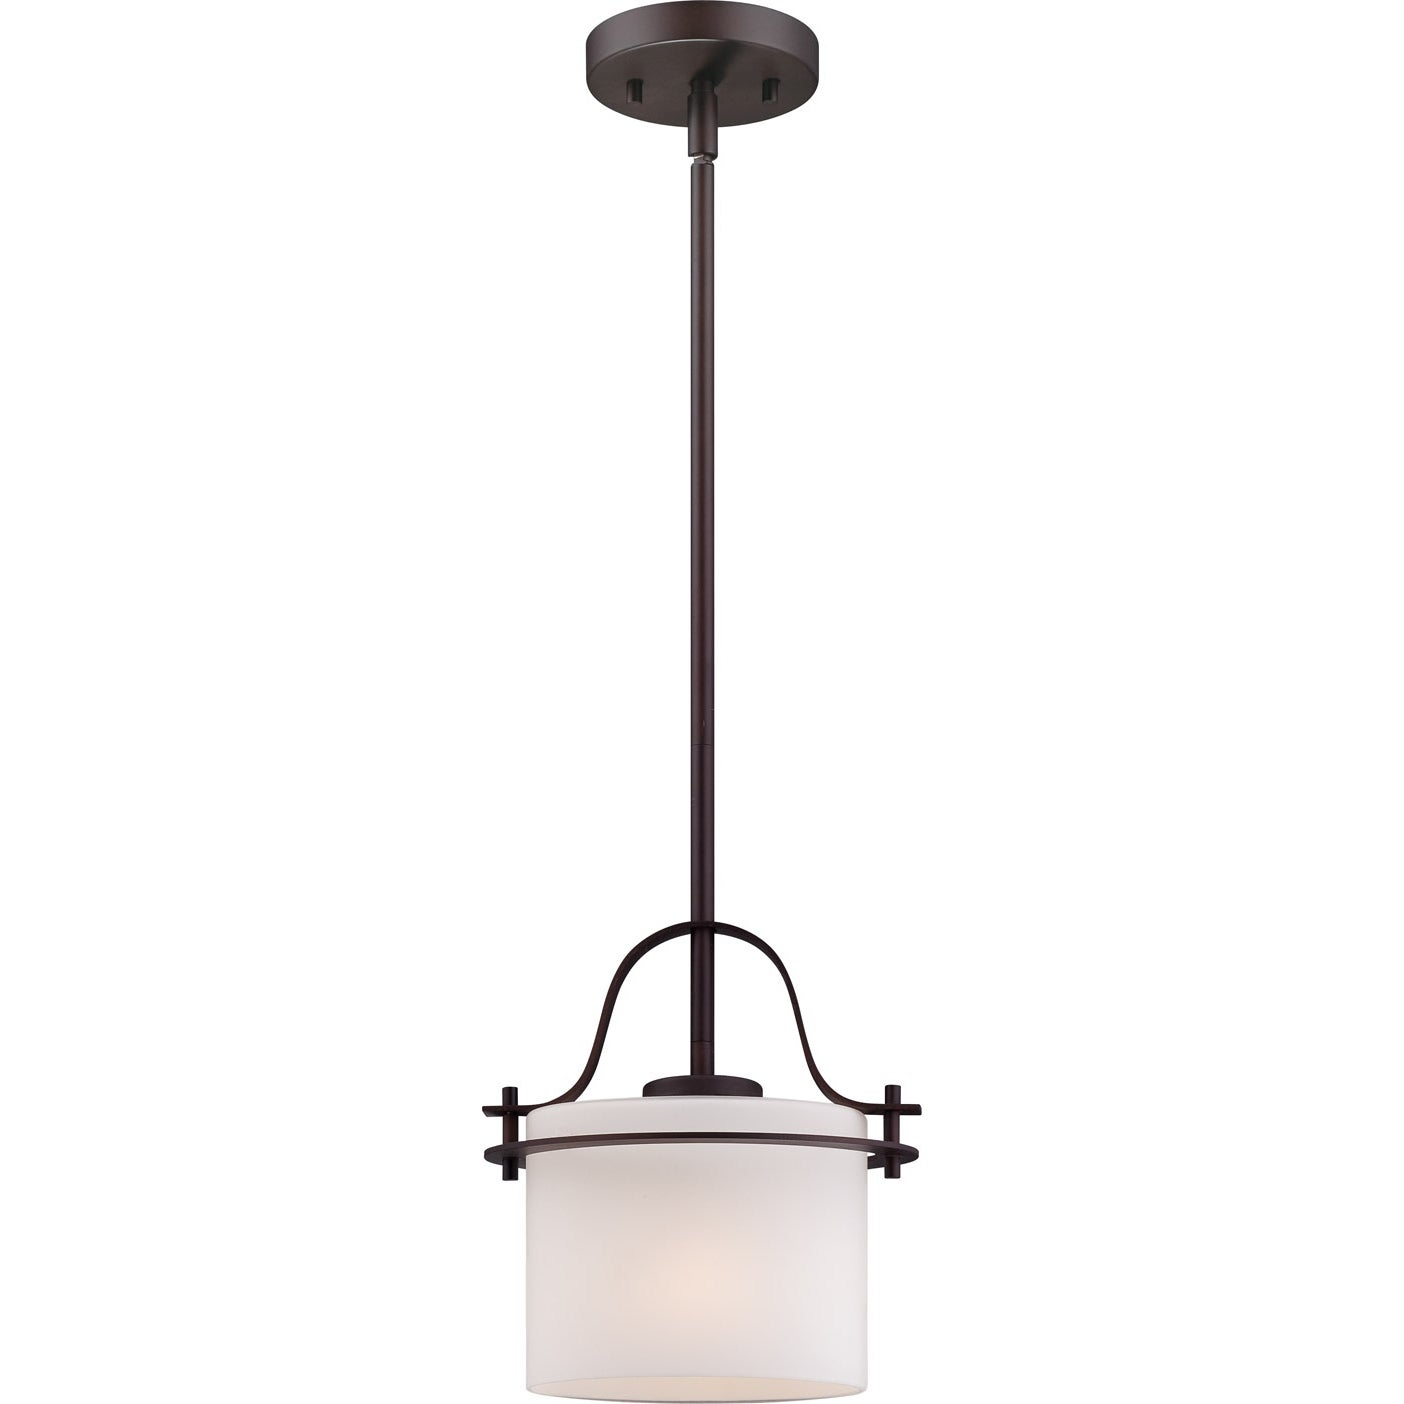 Nuvo Loren 1-light Venetian Bronze Mini Pendant